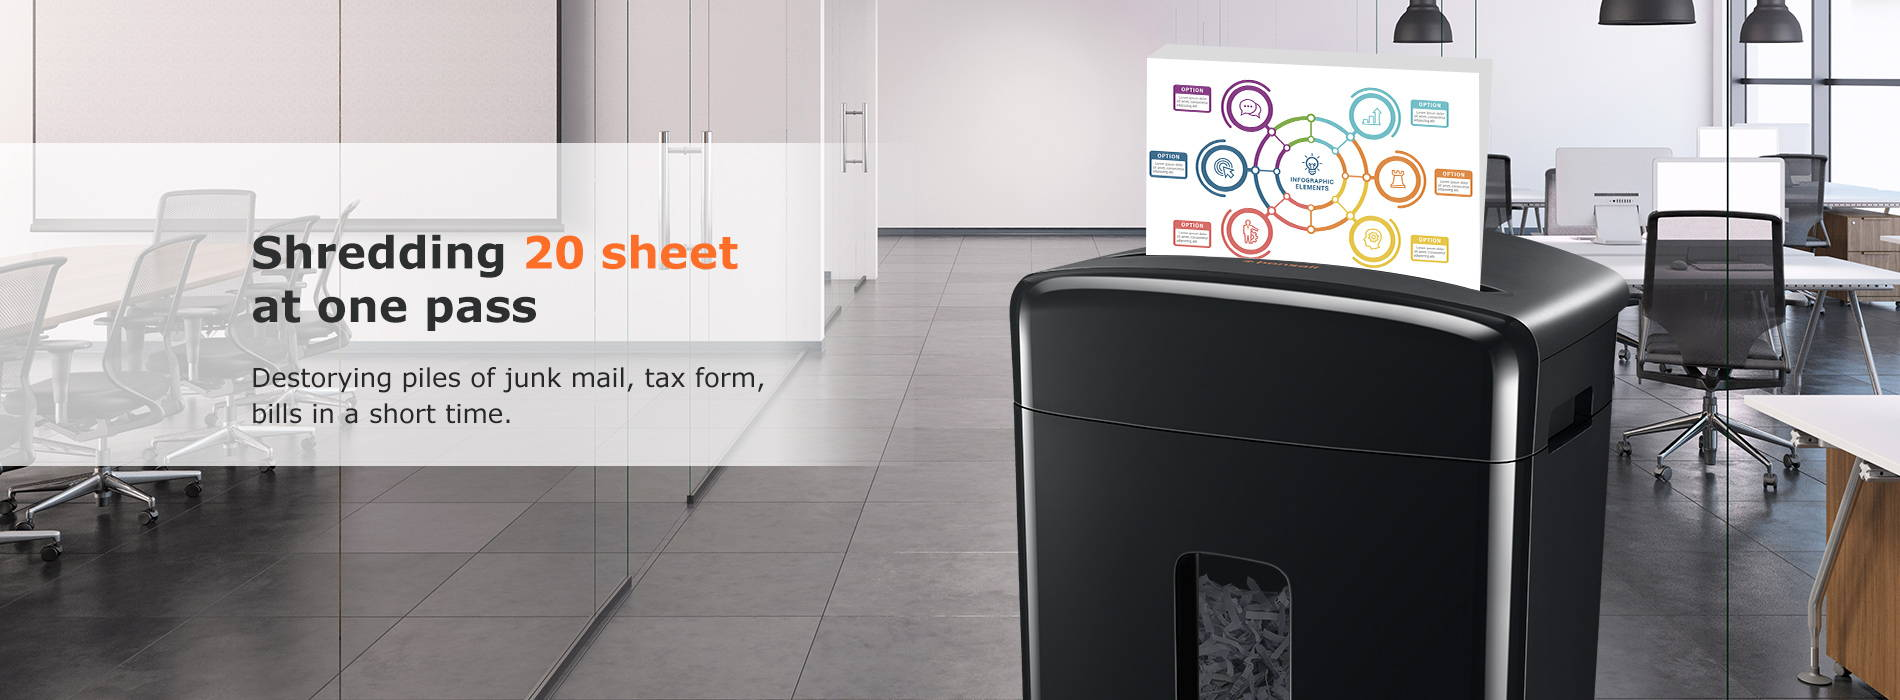 Shredding 20 sheet at one pass Destorying piles of junk mail, tax form, bills in a short time.